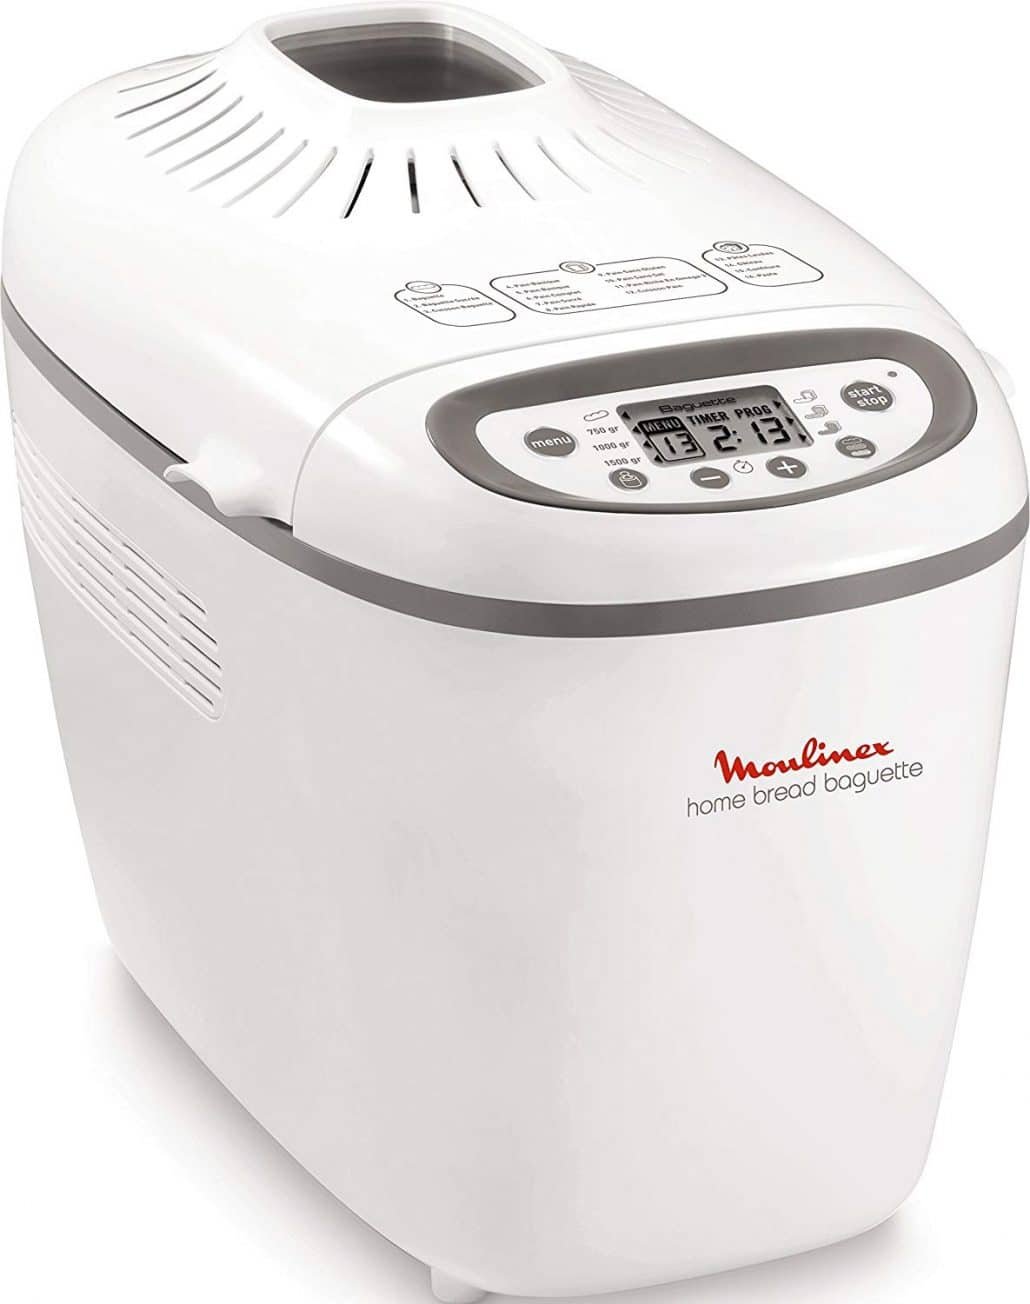 machine à pain moulinex home bread baguettes ow610110